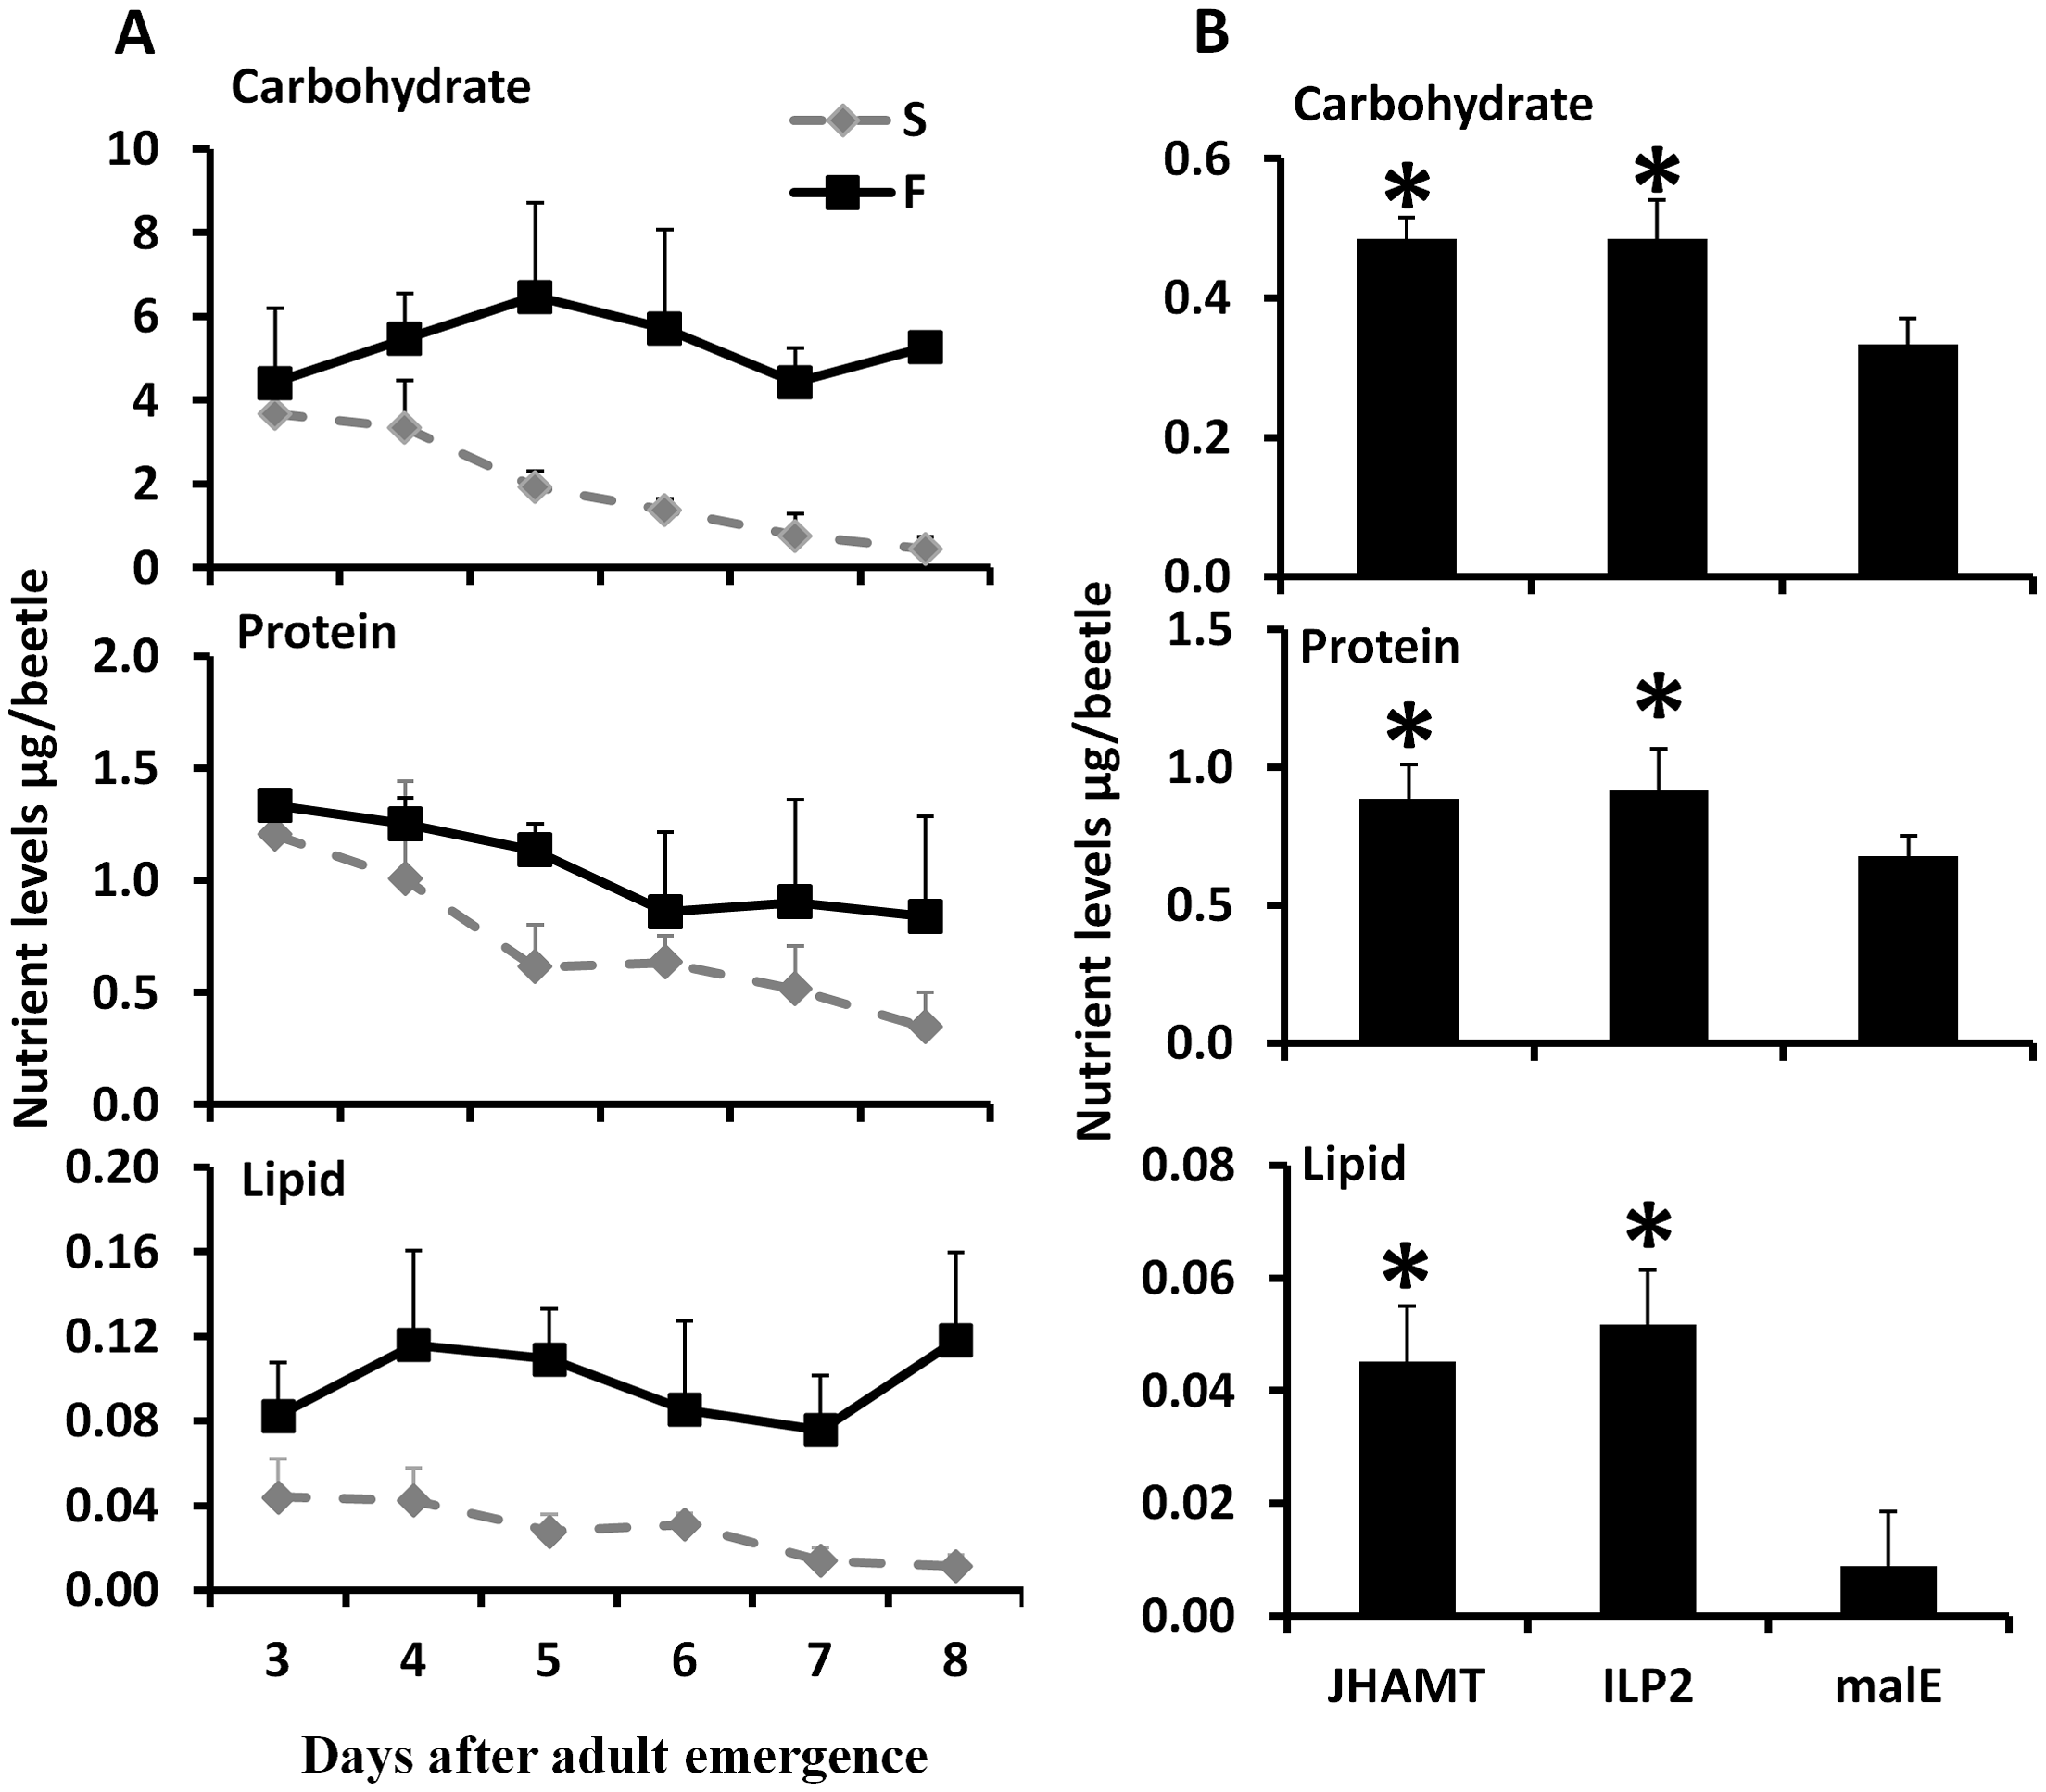 JH and ILP2 regulate carbohydrate, protein, and lipid metabolism during starvation.